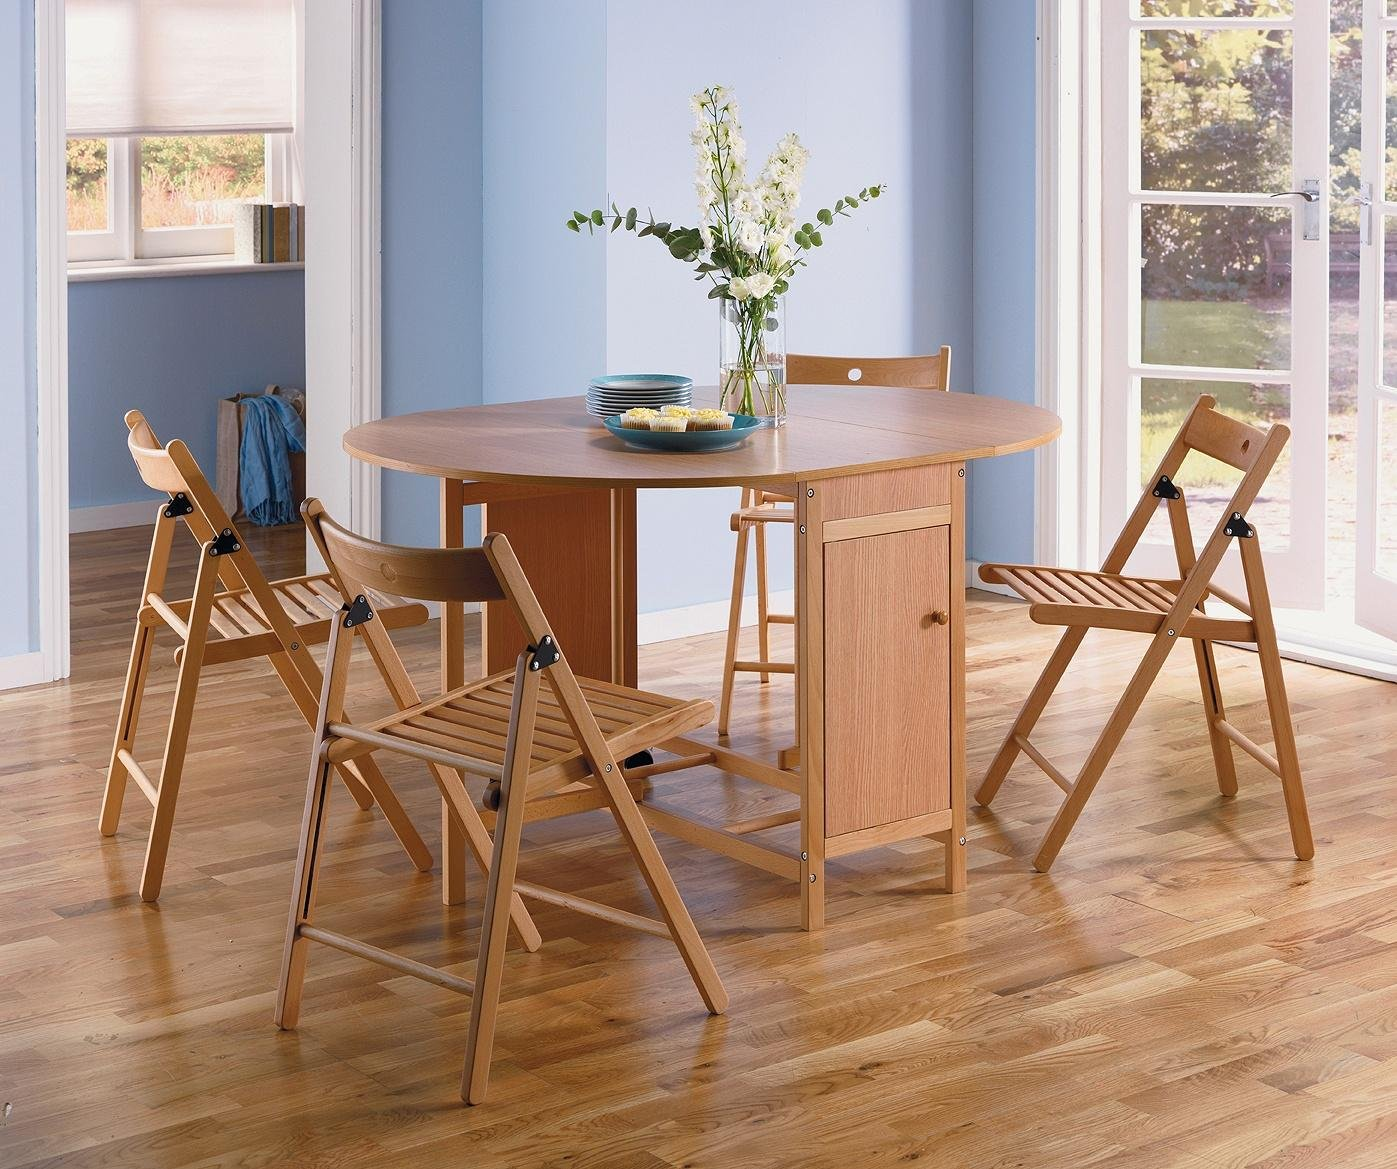 Buy HOME Butterfly Ext Oval Wood Effect Table 4 Chairs Oak at